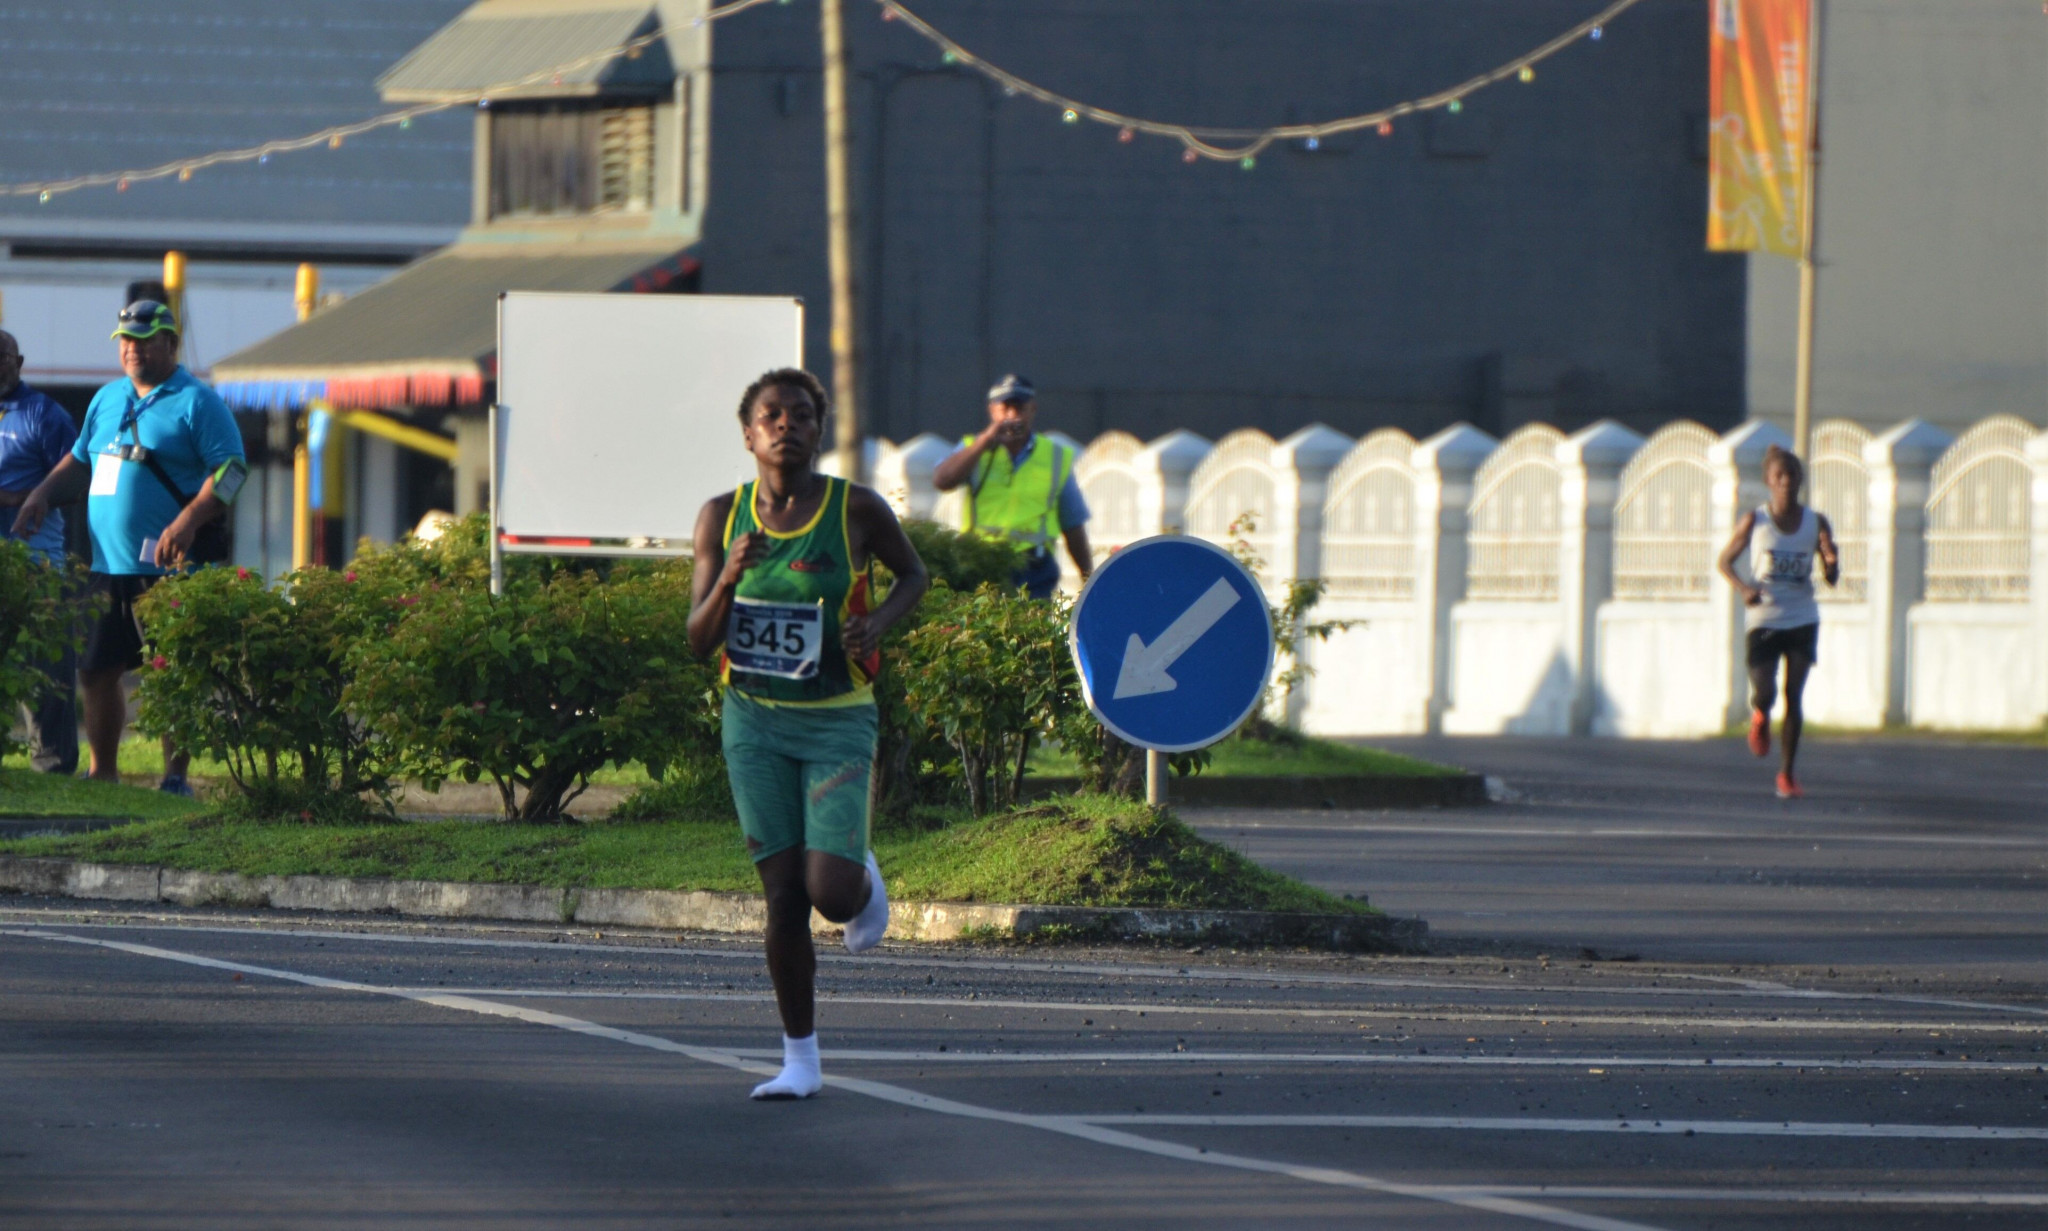 Vanuatu runner socks it to the competition by winning 2019 Pacific Games half marathon without shoes